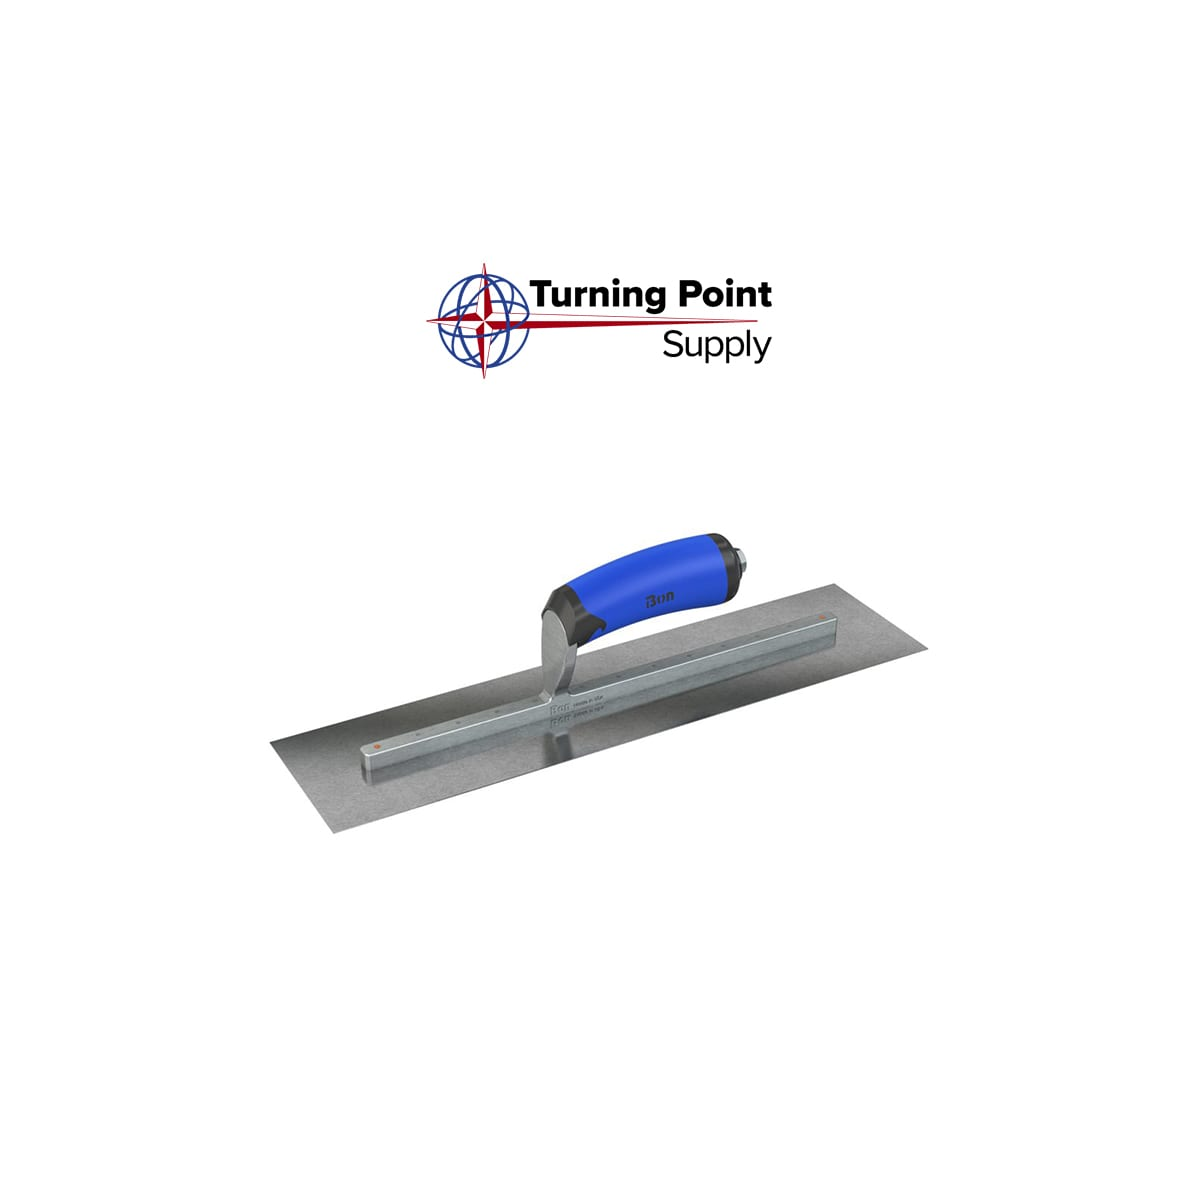 Right STEEL FINISHING TROWEL SQUARE END - 16 X 4 Bon Tools 67-235